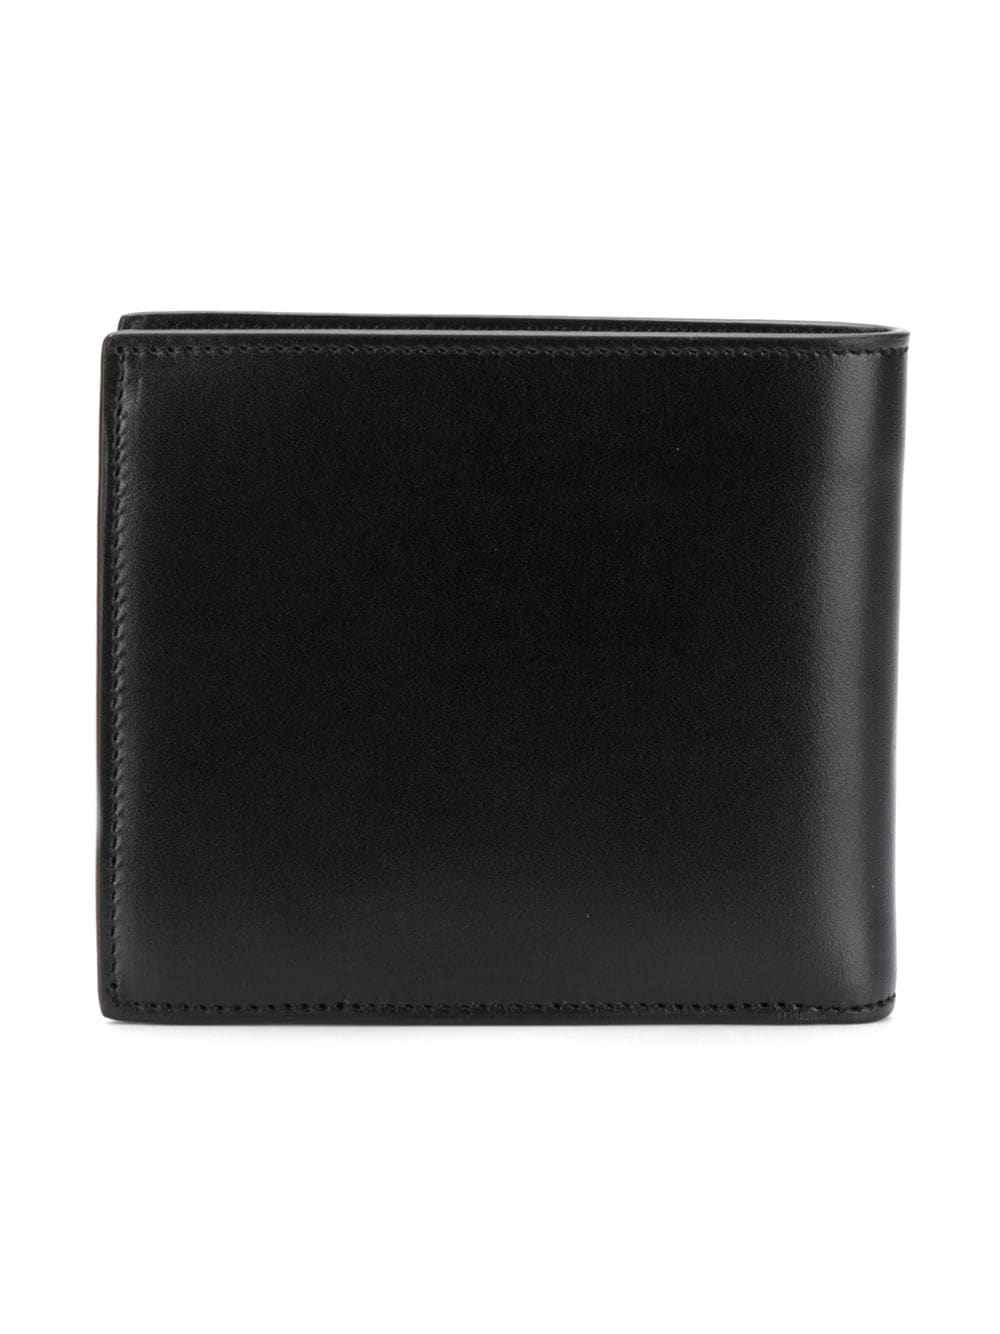 SAINT LAURENT MEN SOHO WALLET